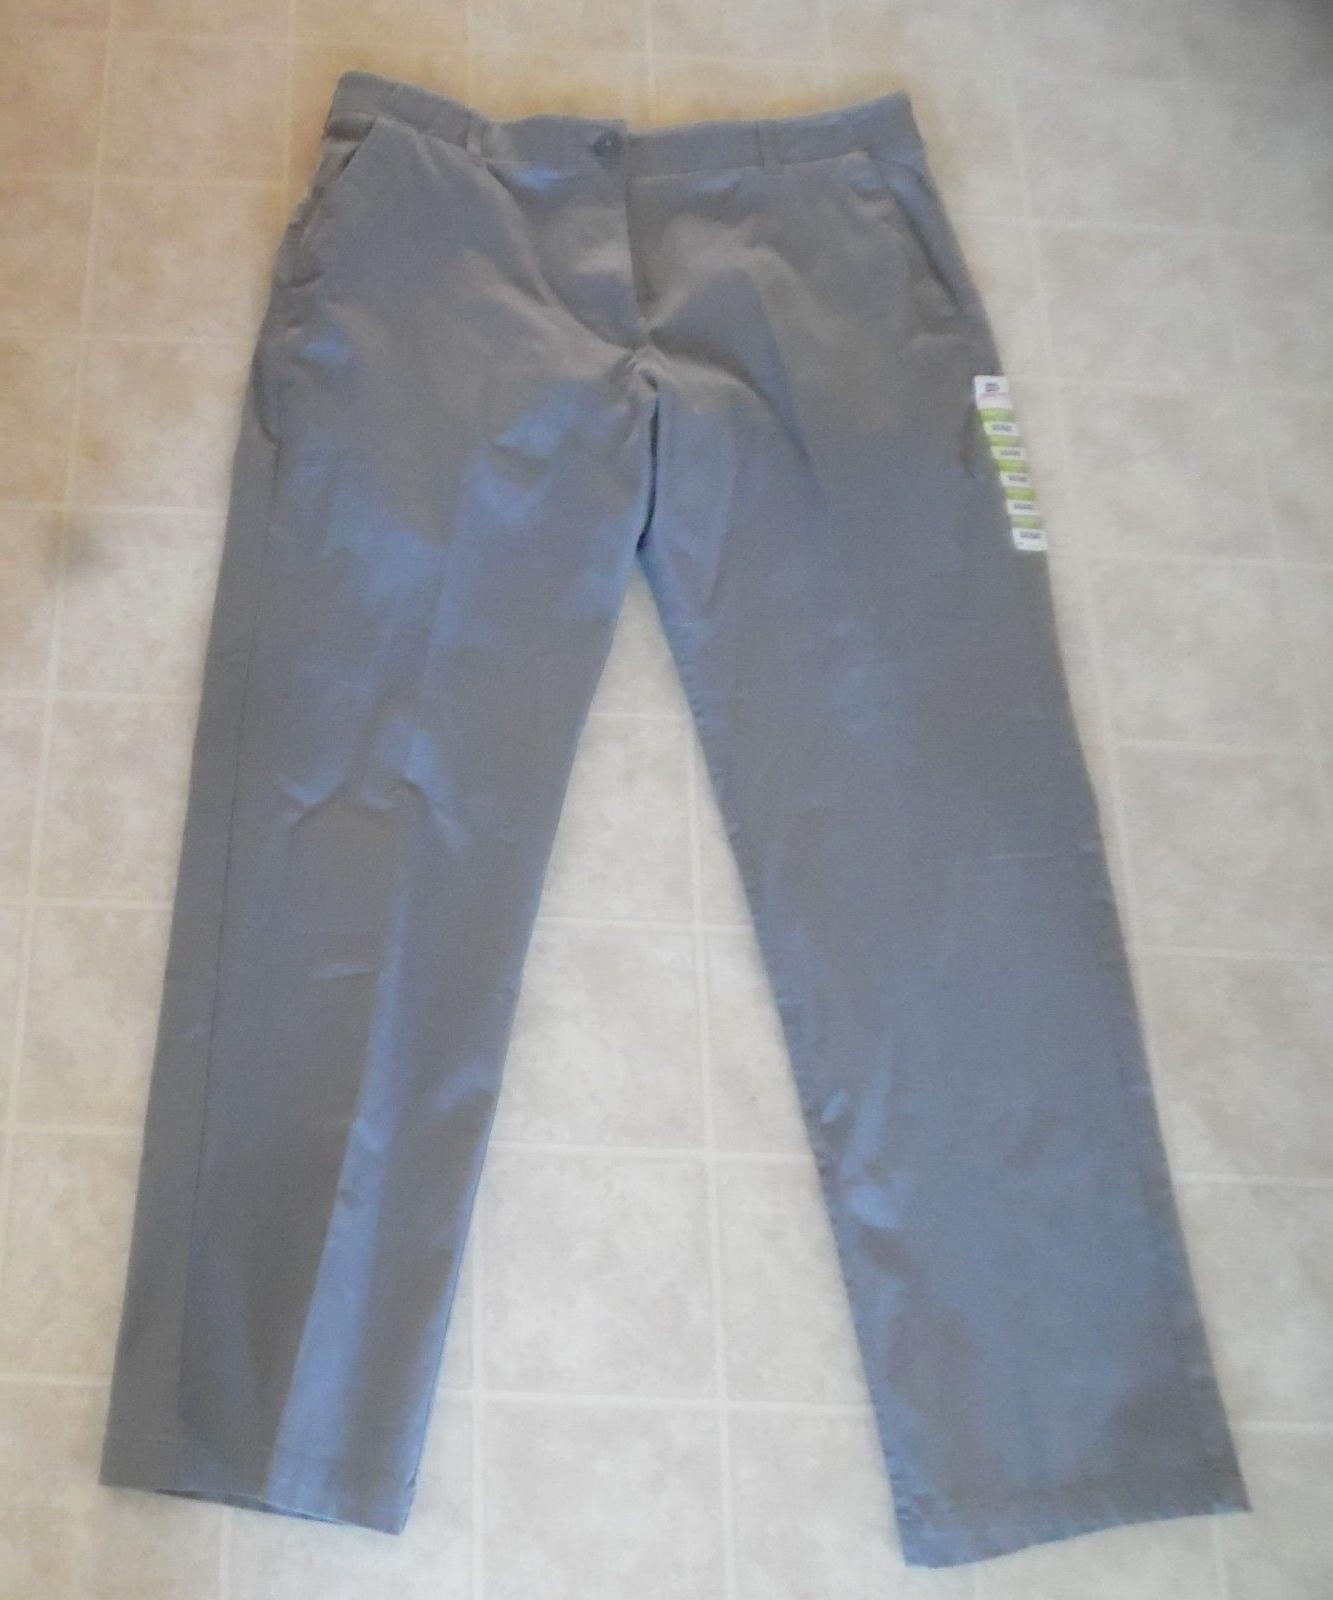 Lee X-Treme Comfort Men's Gray Casual Pants Size 38 X 32